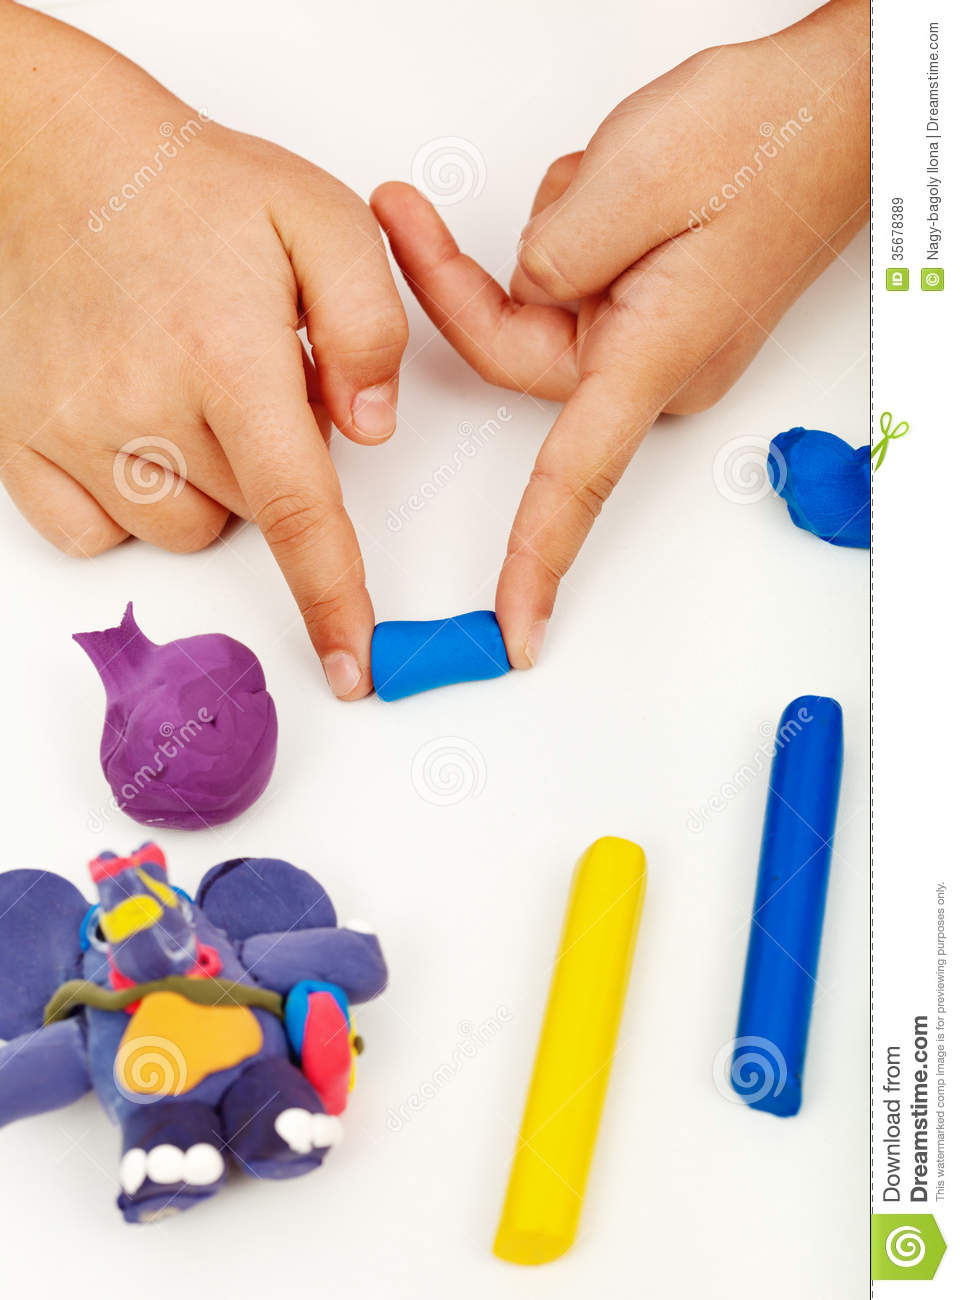 Child Hands With Colorful Clay Stock Image - Image of ...